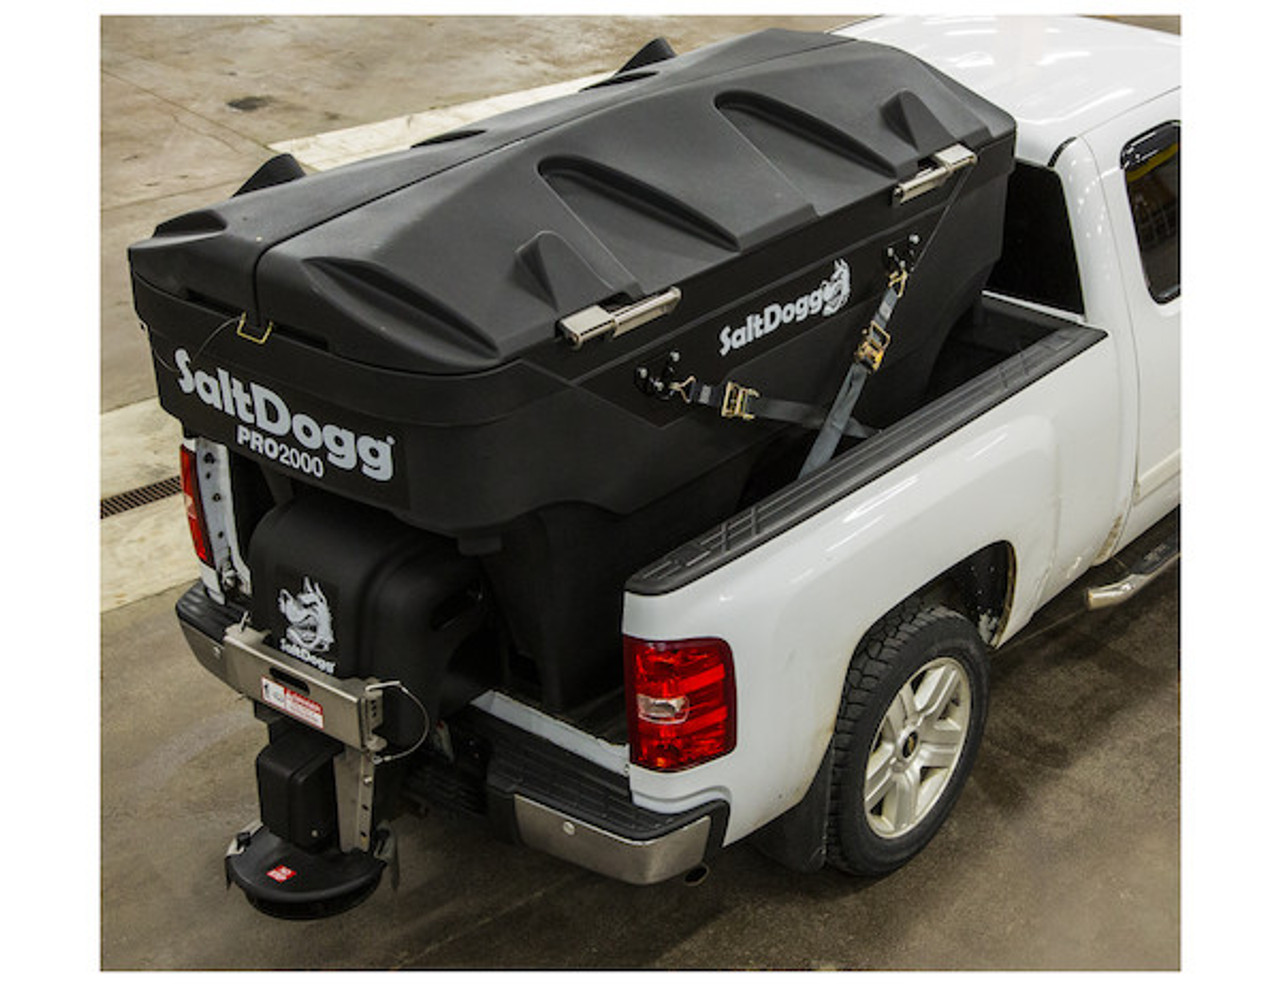 PRO2000 BUYERS SALTDOGG ELECTRIC POLY HOPPER SPREADER WITH AUGER  SHOWN WITH SALTDOGG EZ LID (LID SOLD SEPARATELY) Picture # 6